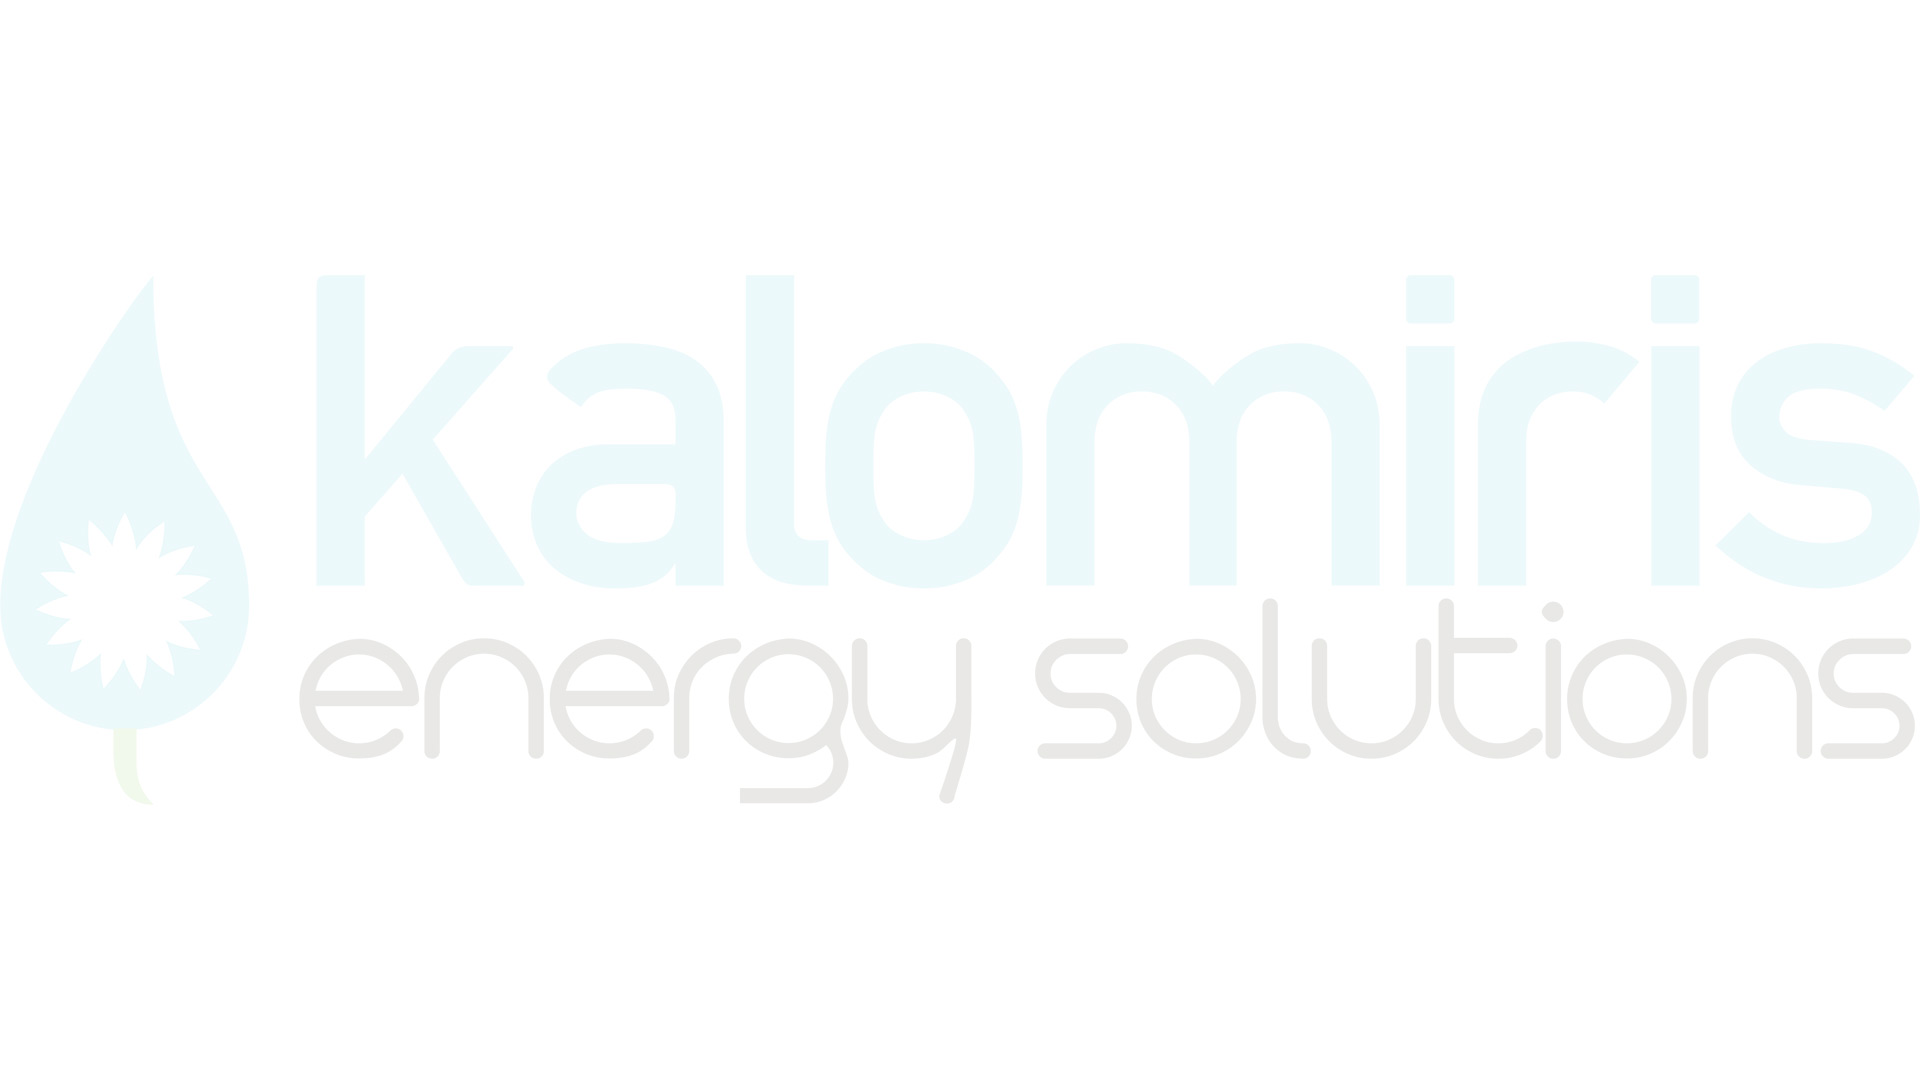 Ceiling Fan CASAFAN ECO AVIATOS 162 BN-AH 64 (162cm)